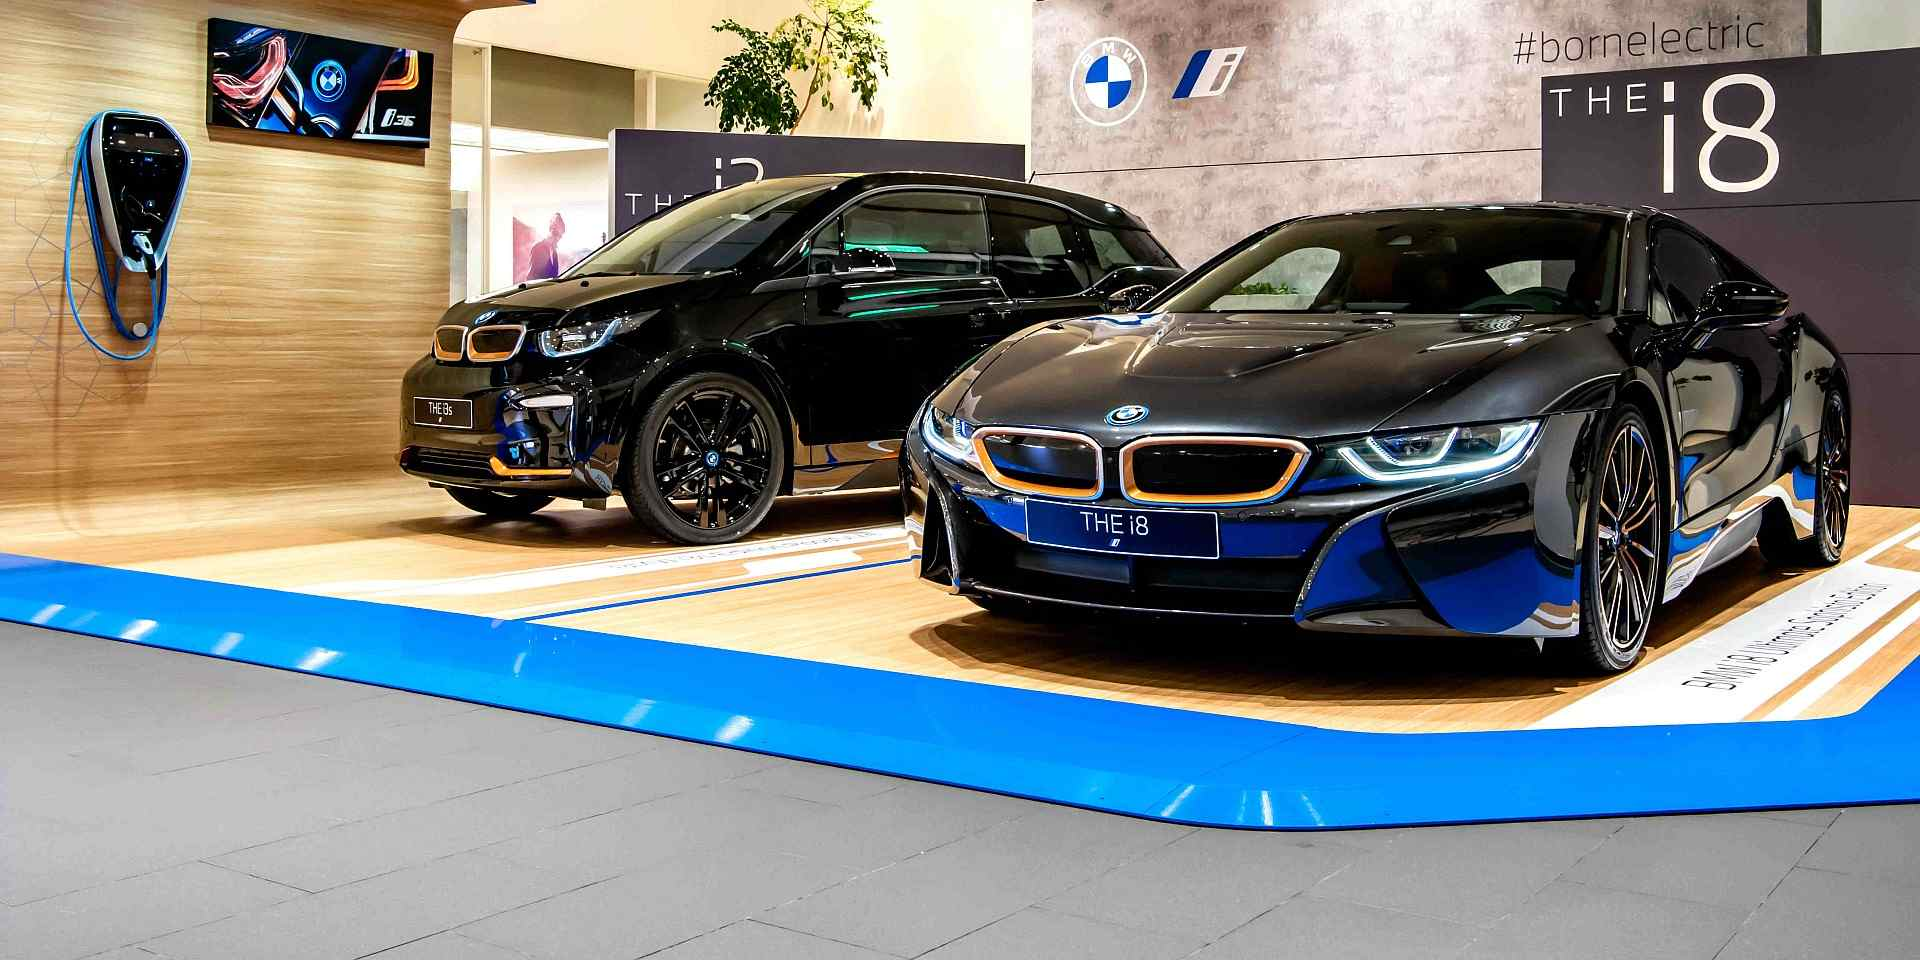 電能未來:BMW 全新 i3s Edition RoadStyle 及 i8 Ultimate Sophisto Edition全球限量特仕版抵台上市